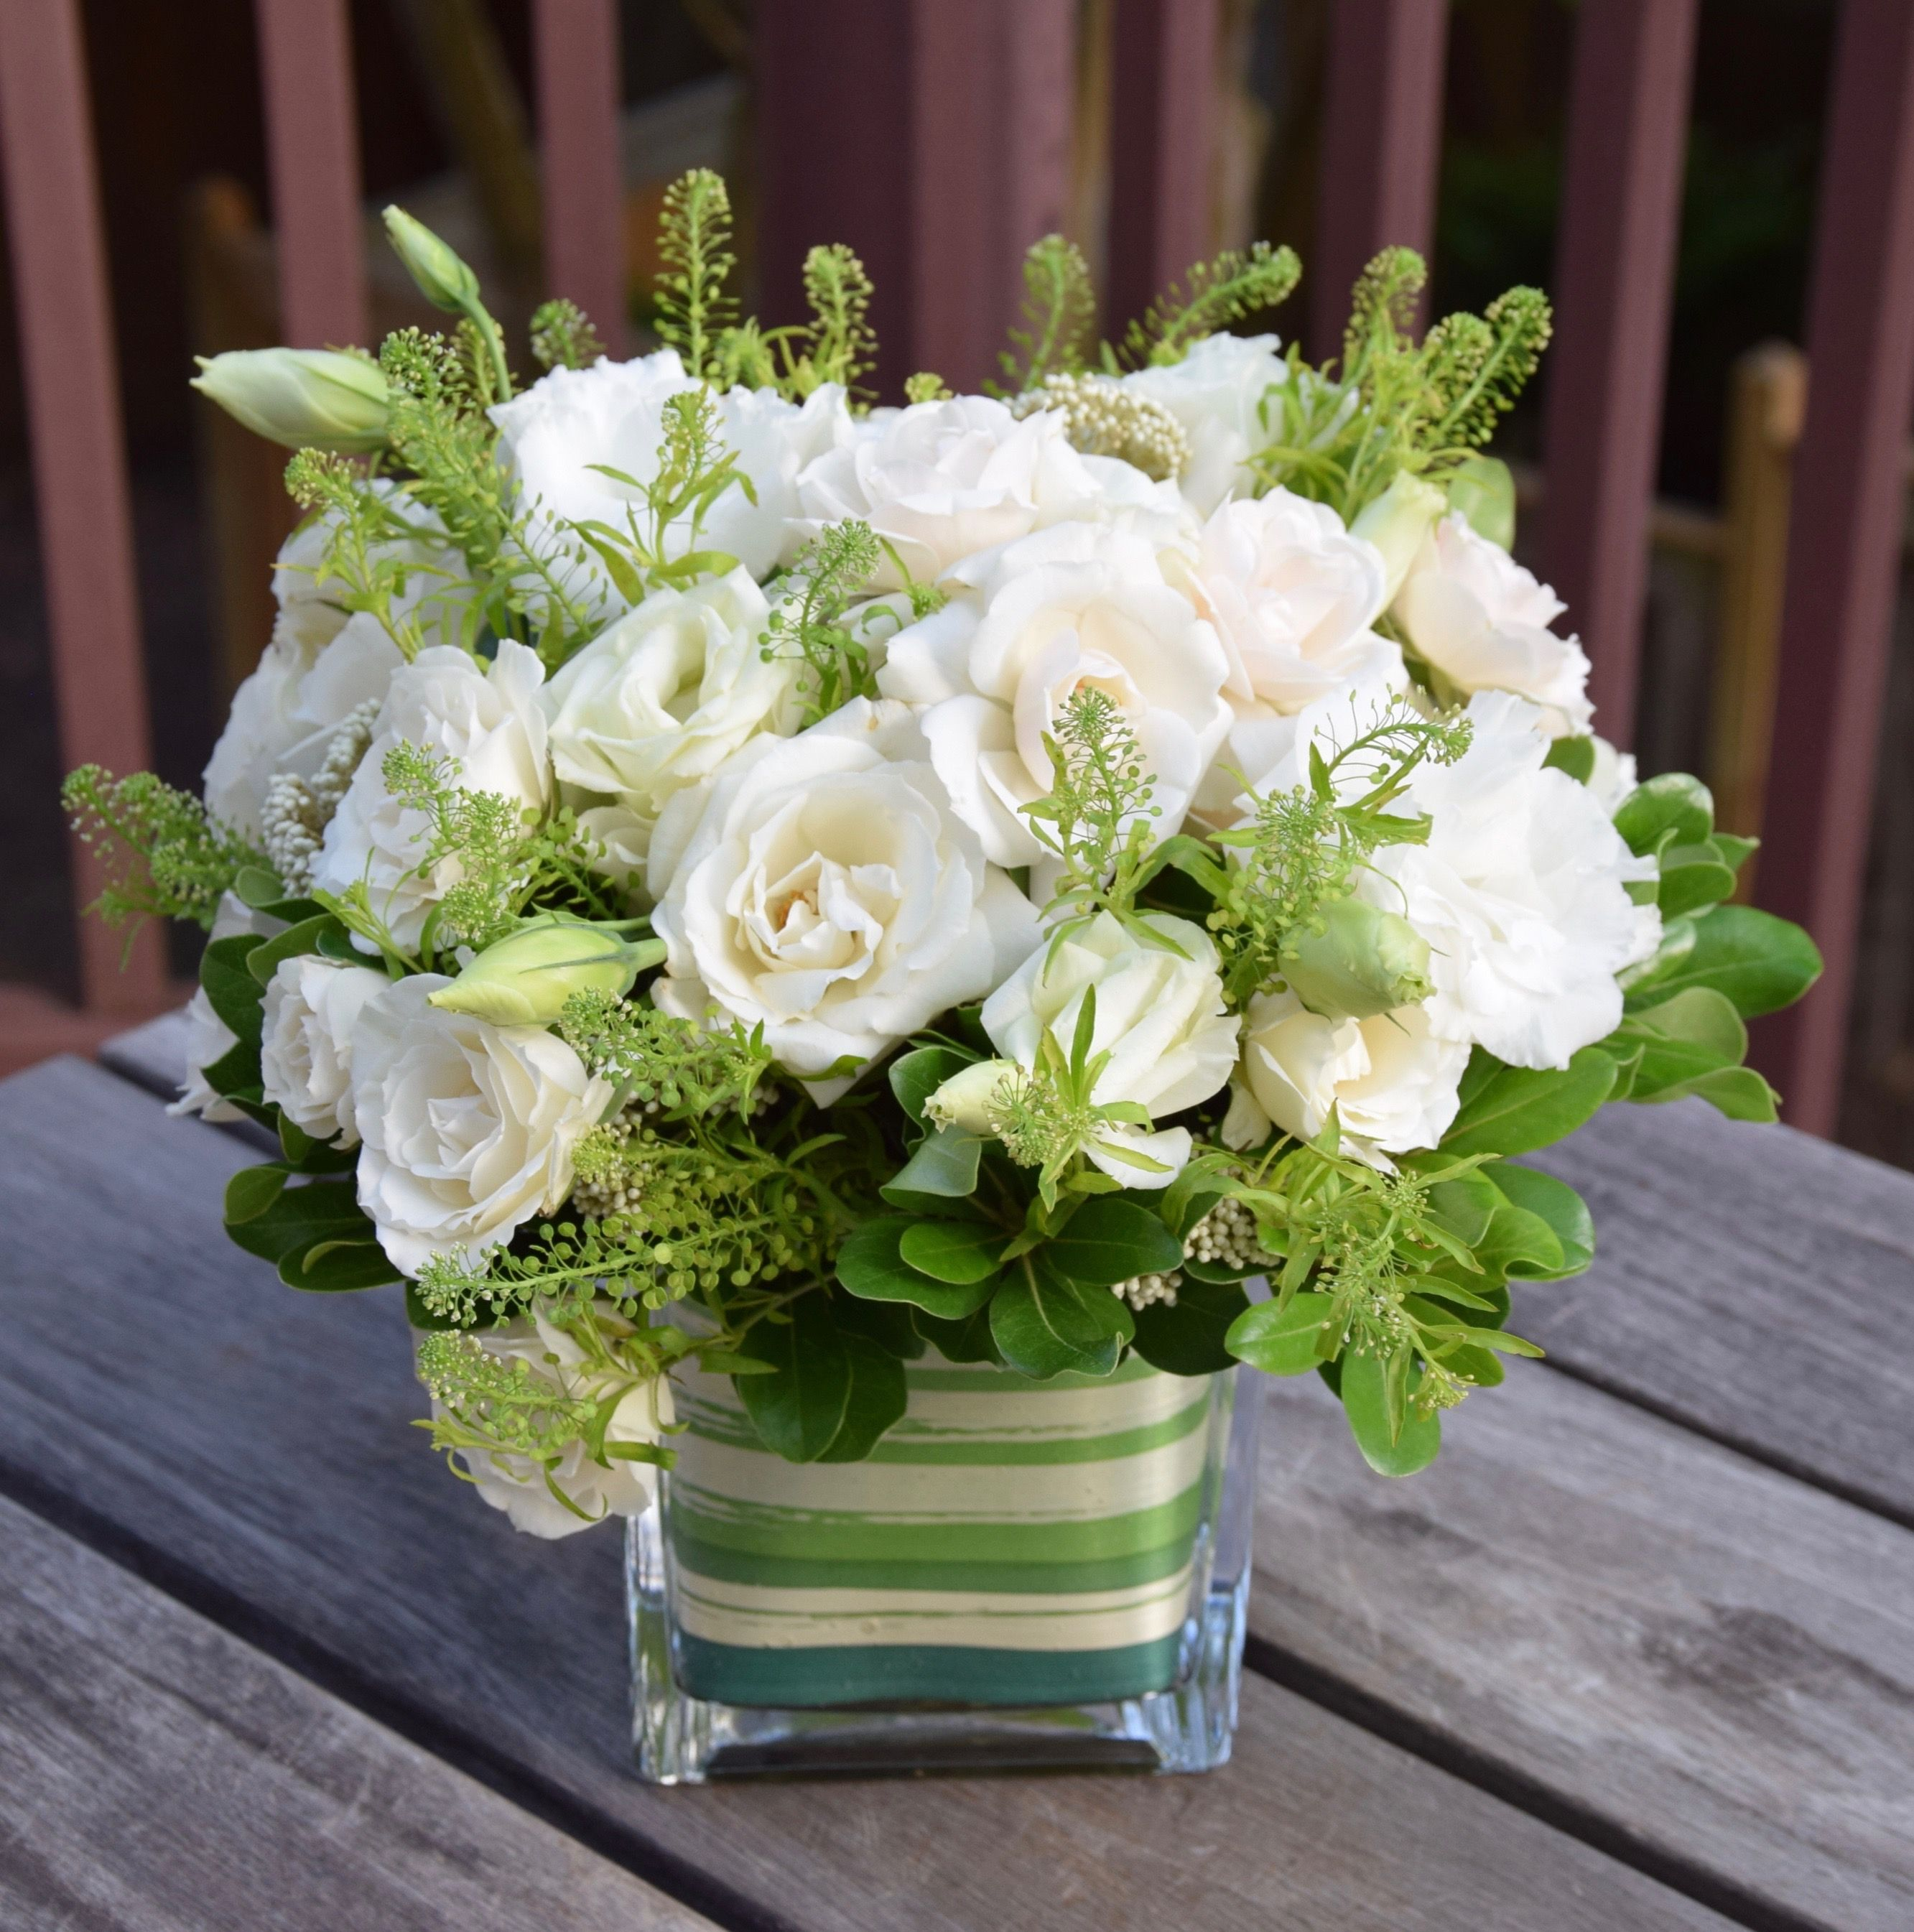 White And Green Flower Arrangement For The First Communion Celebration Small Flower Arrangements Fresh Flowers Arrangements Flower Arrangements